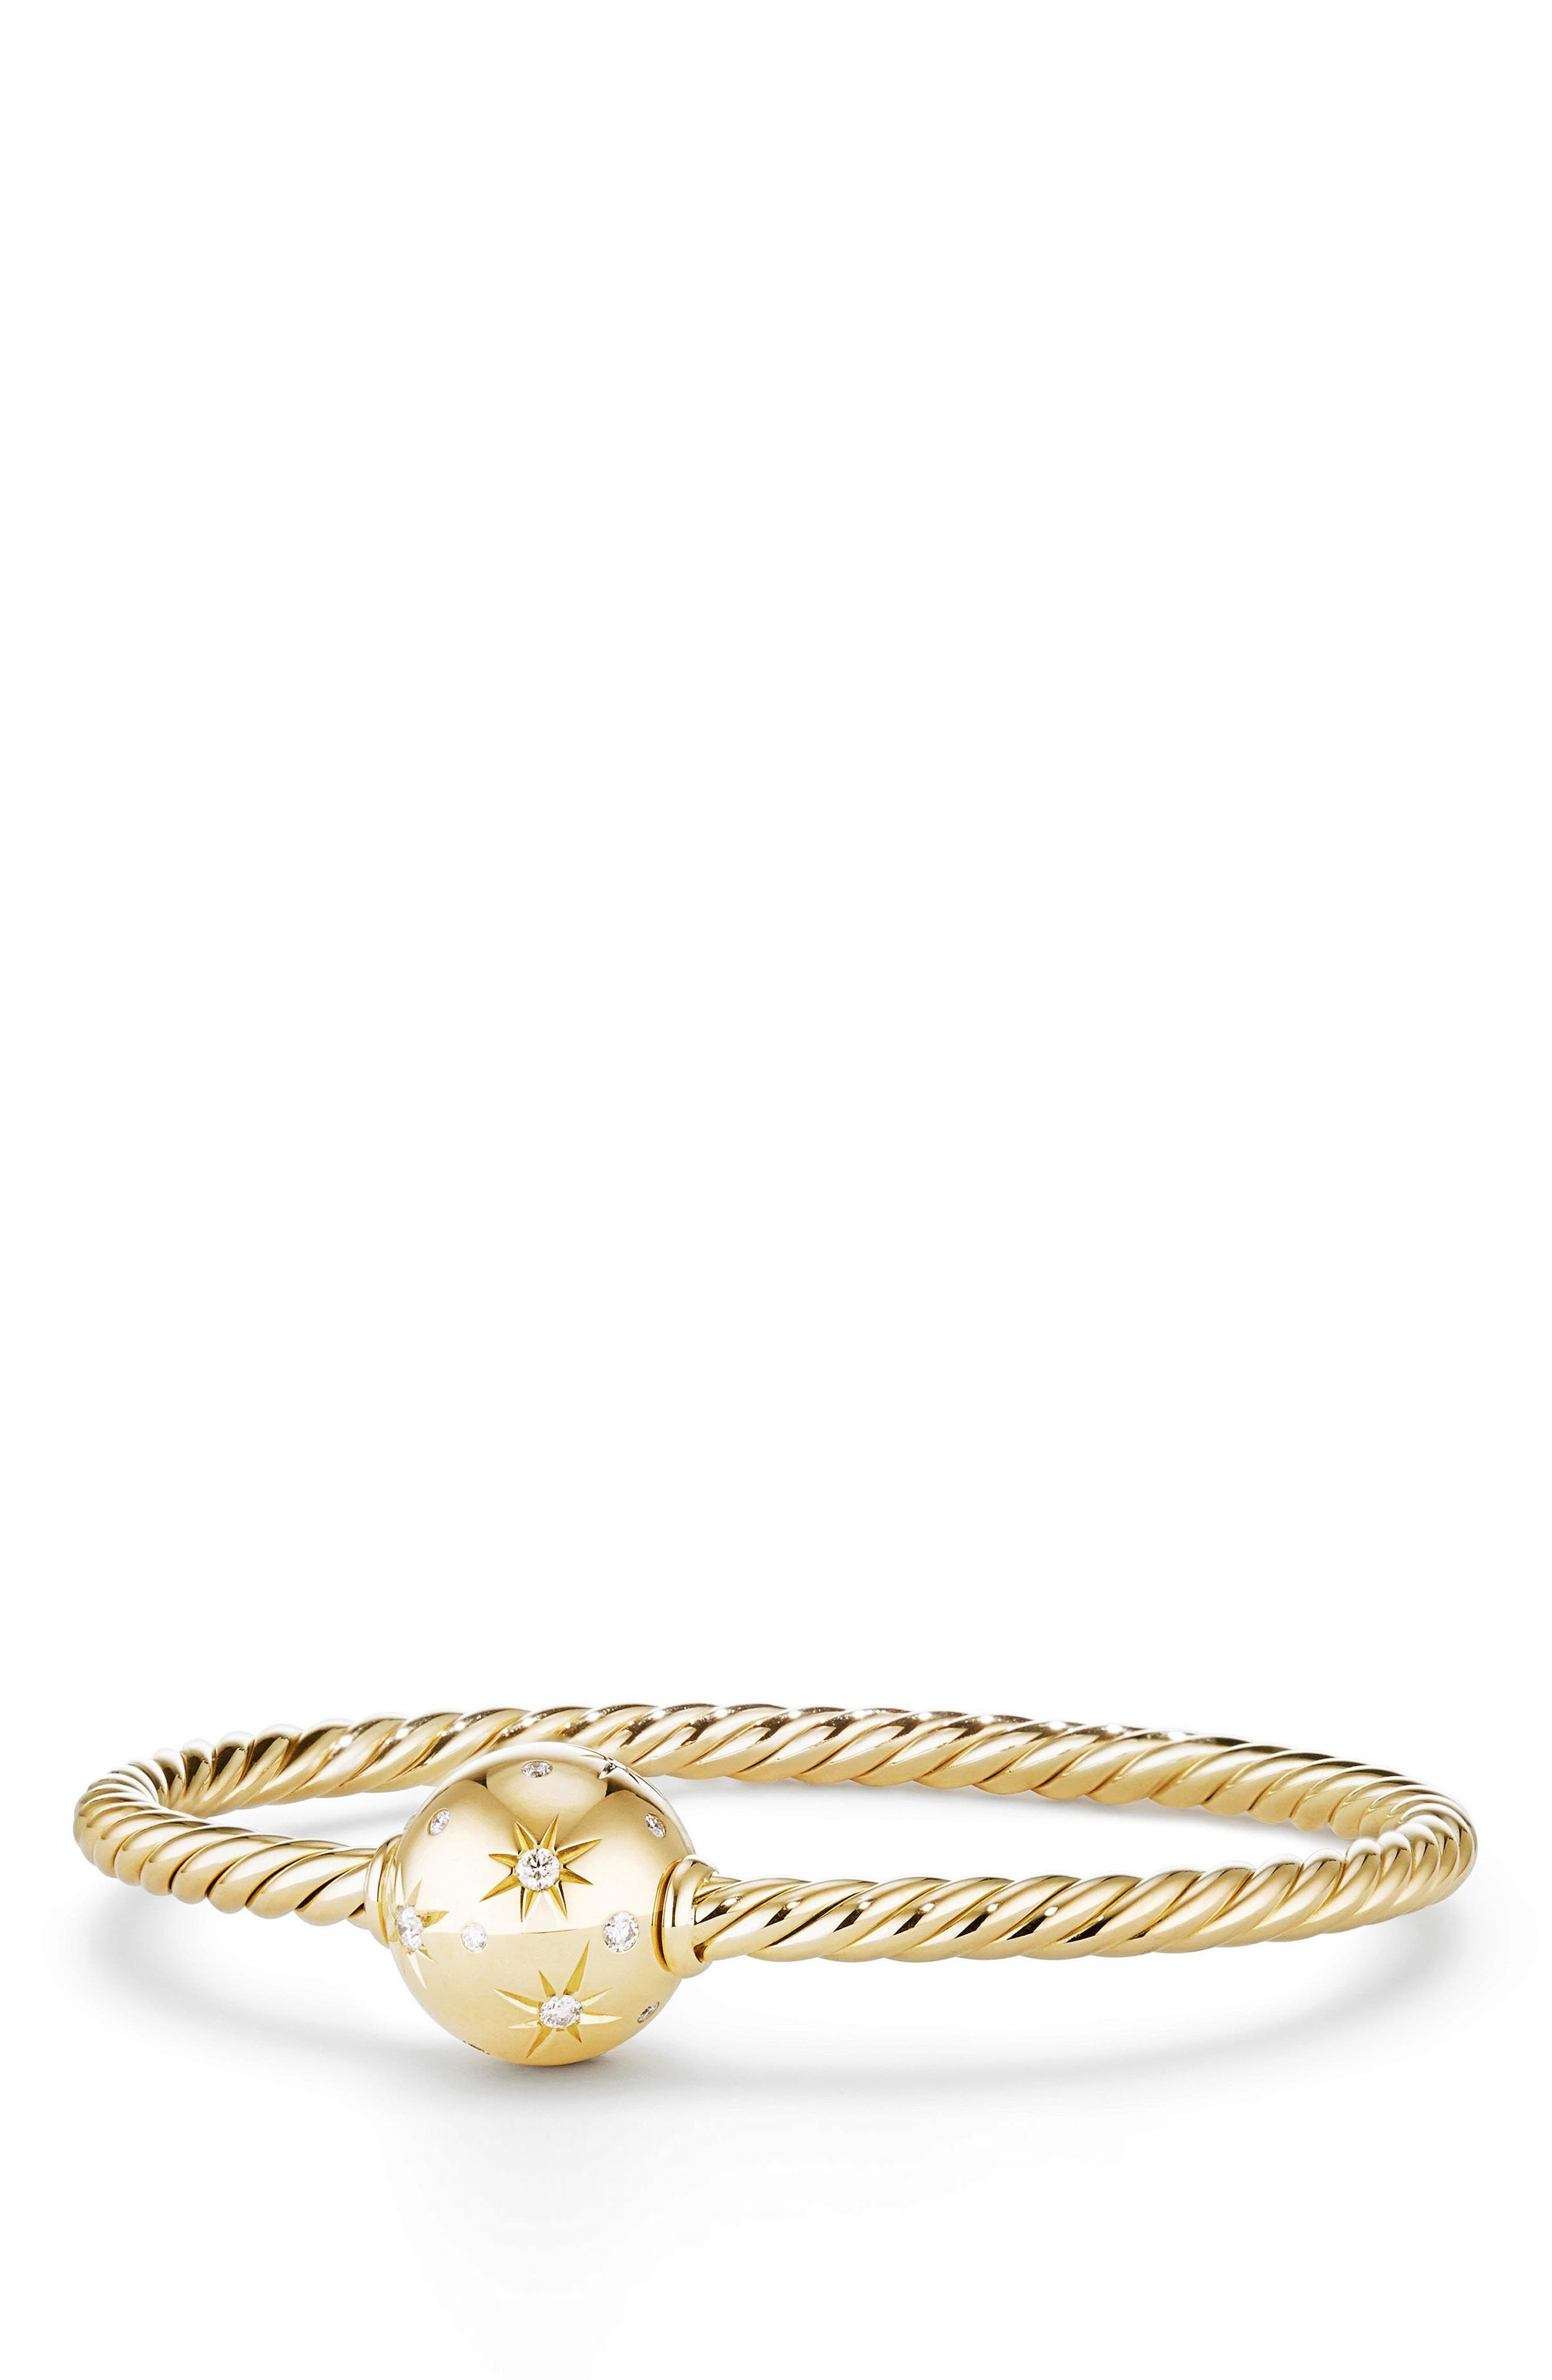 Solari Station Bracelet with Diamonds in 18K Gold,                             Main thumbnail 1, color,                             YELLOW GOLD